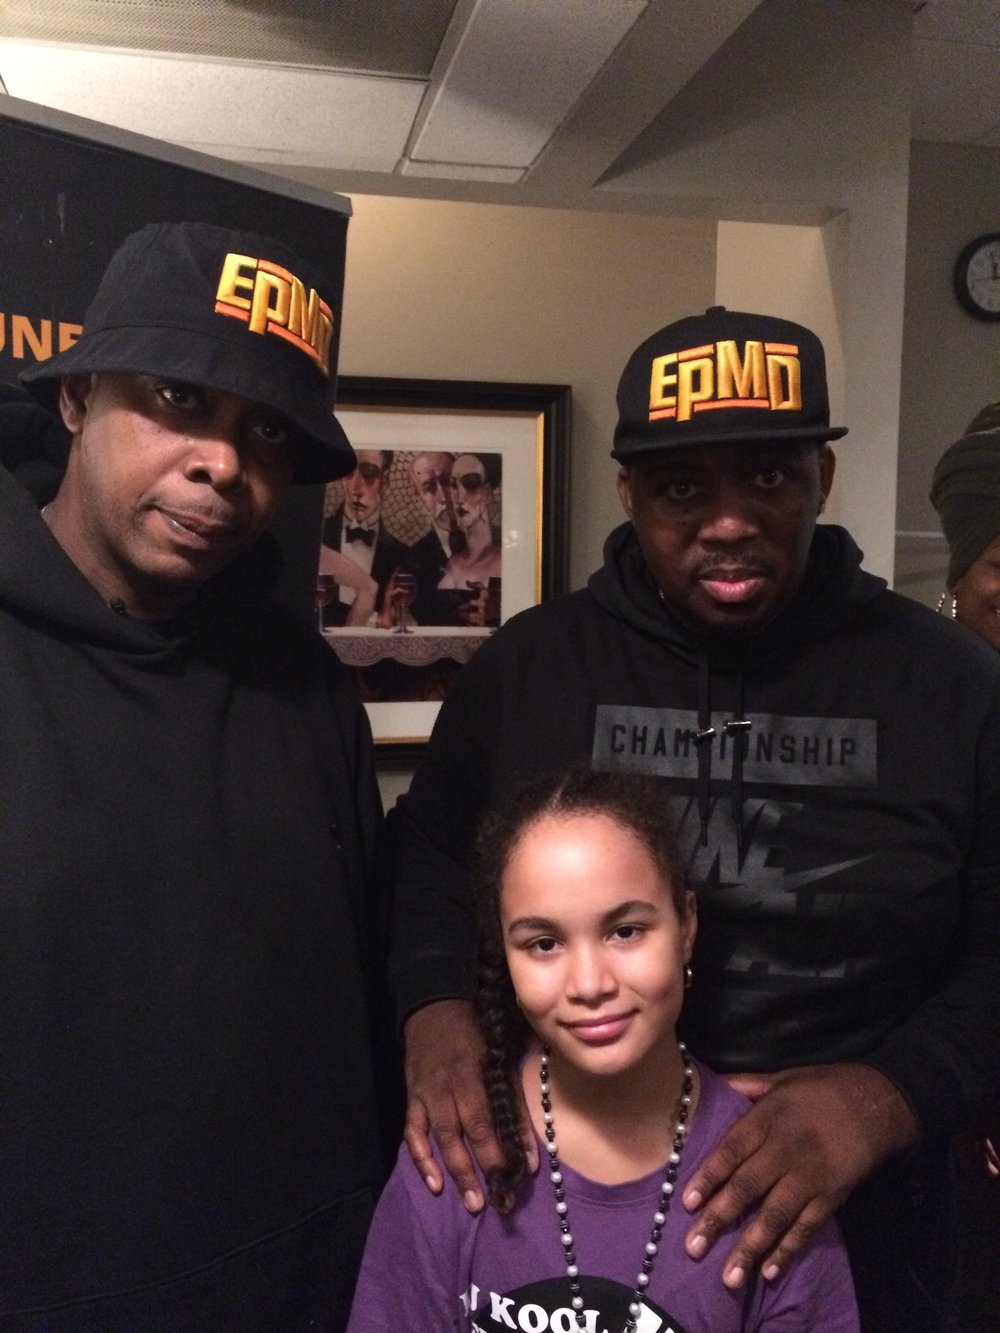 Kool Flash and EPMD 11:4:16.jpg